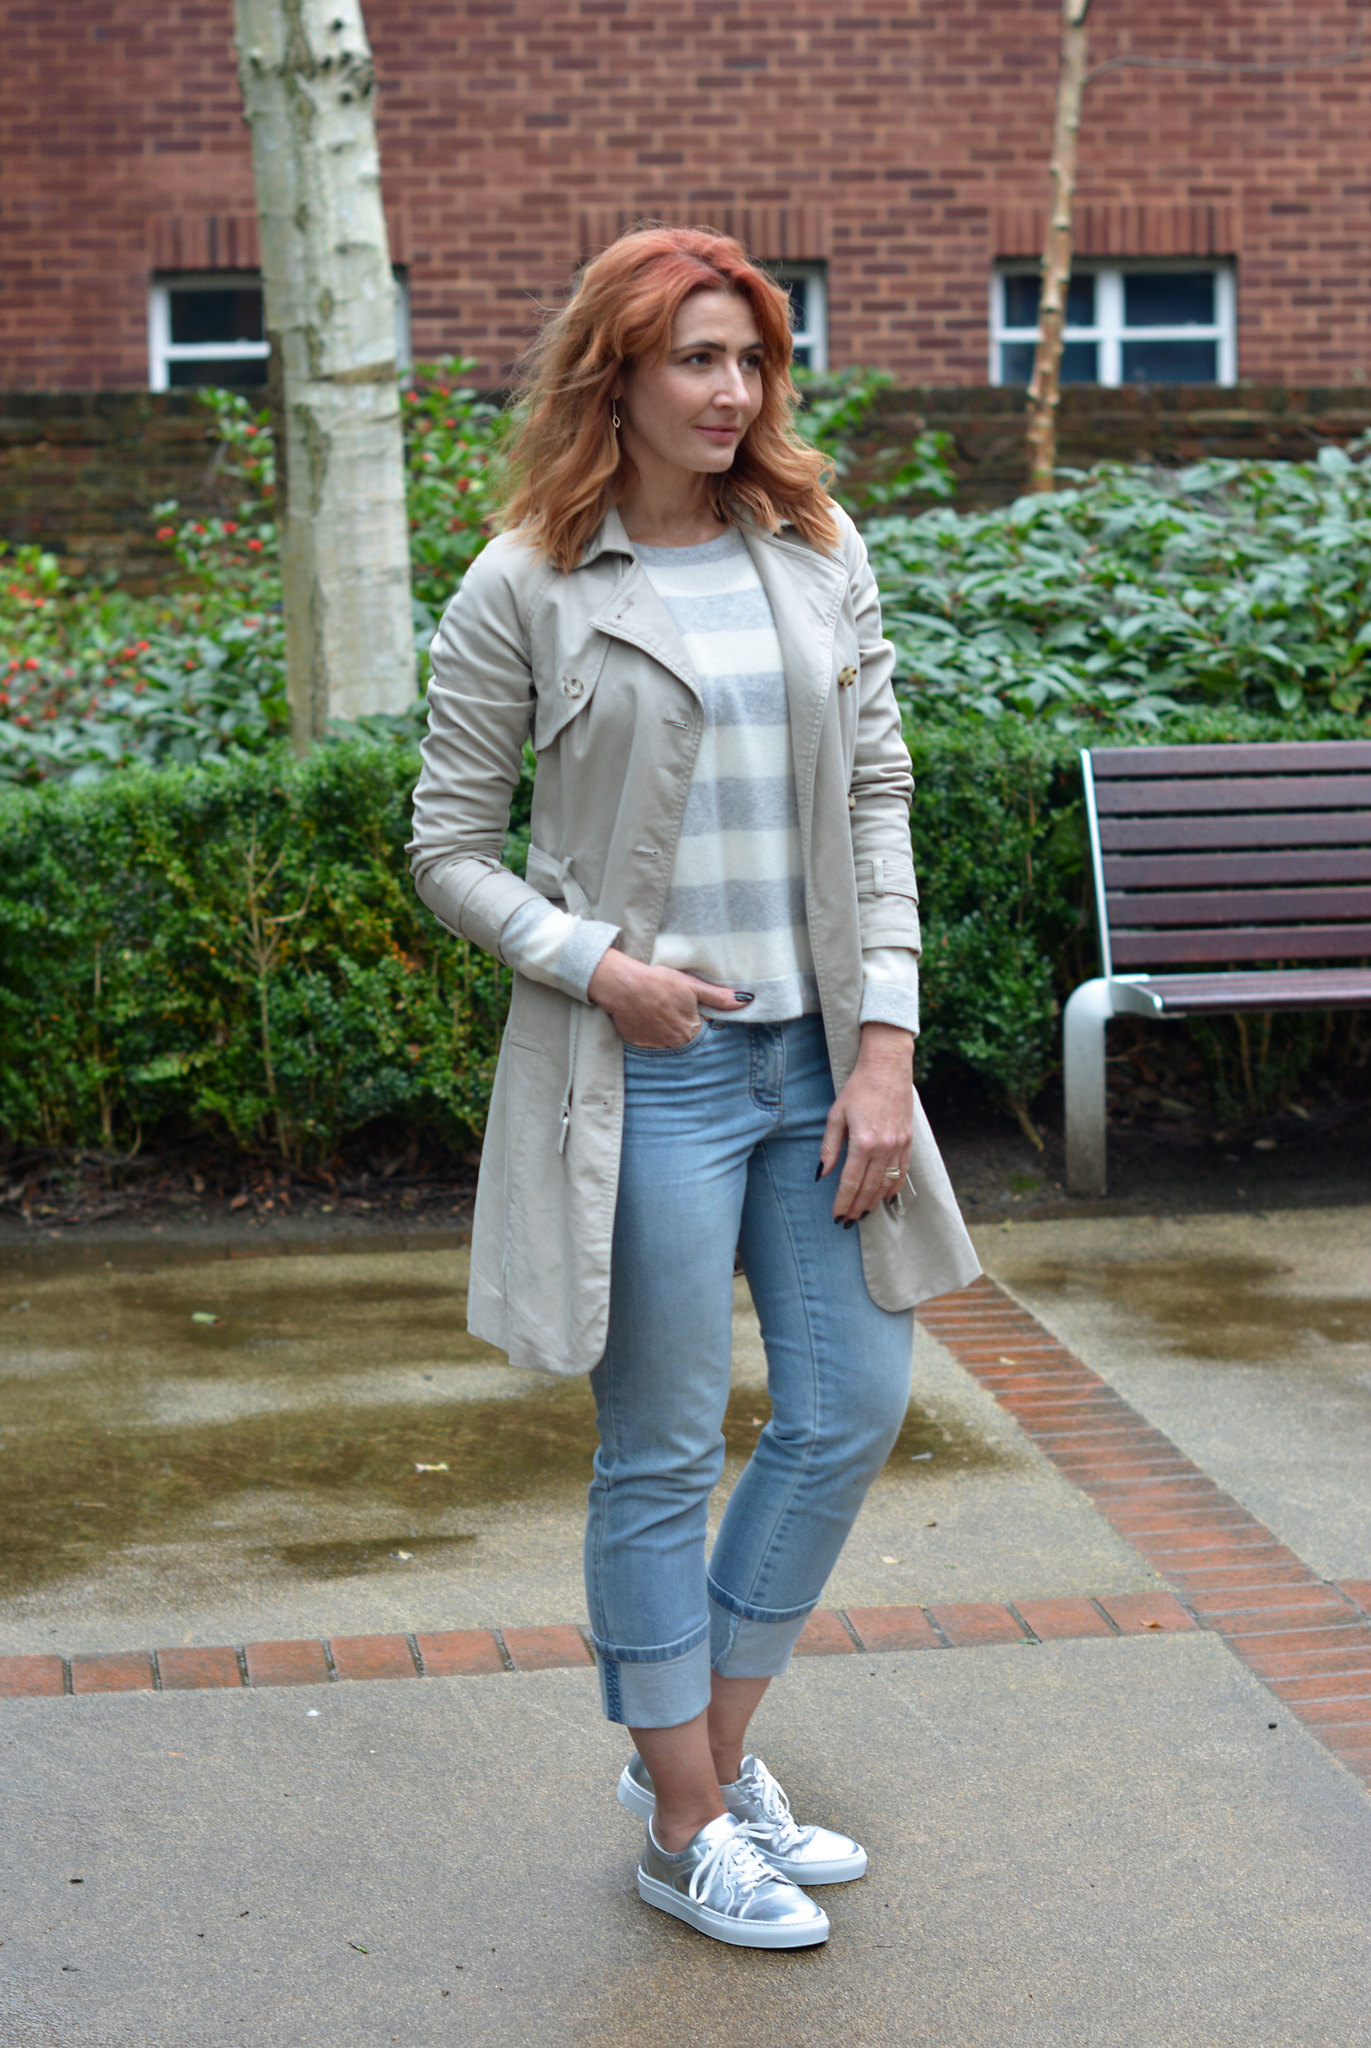 Soft pastels, light wash denim and silver for spring | Not Dressed As Lamb